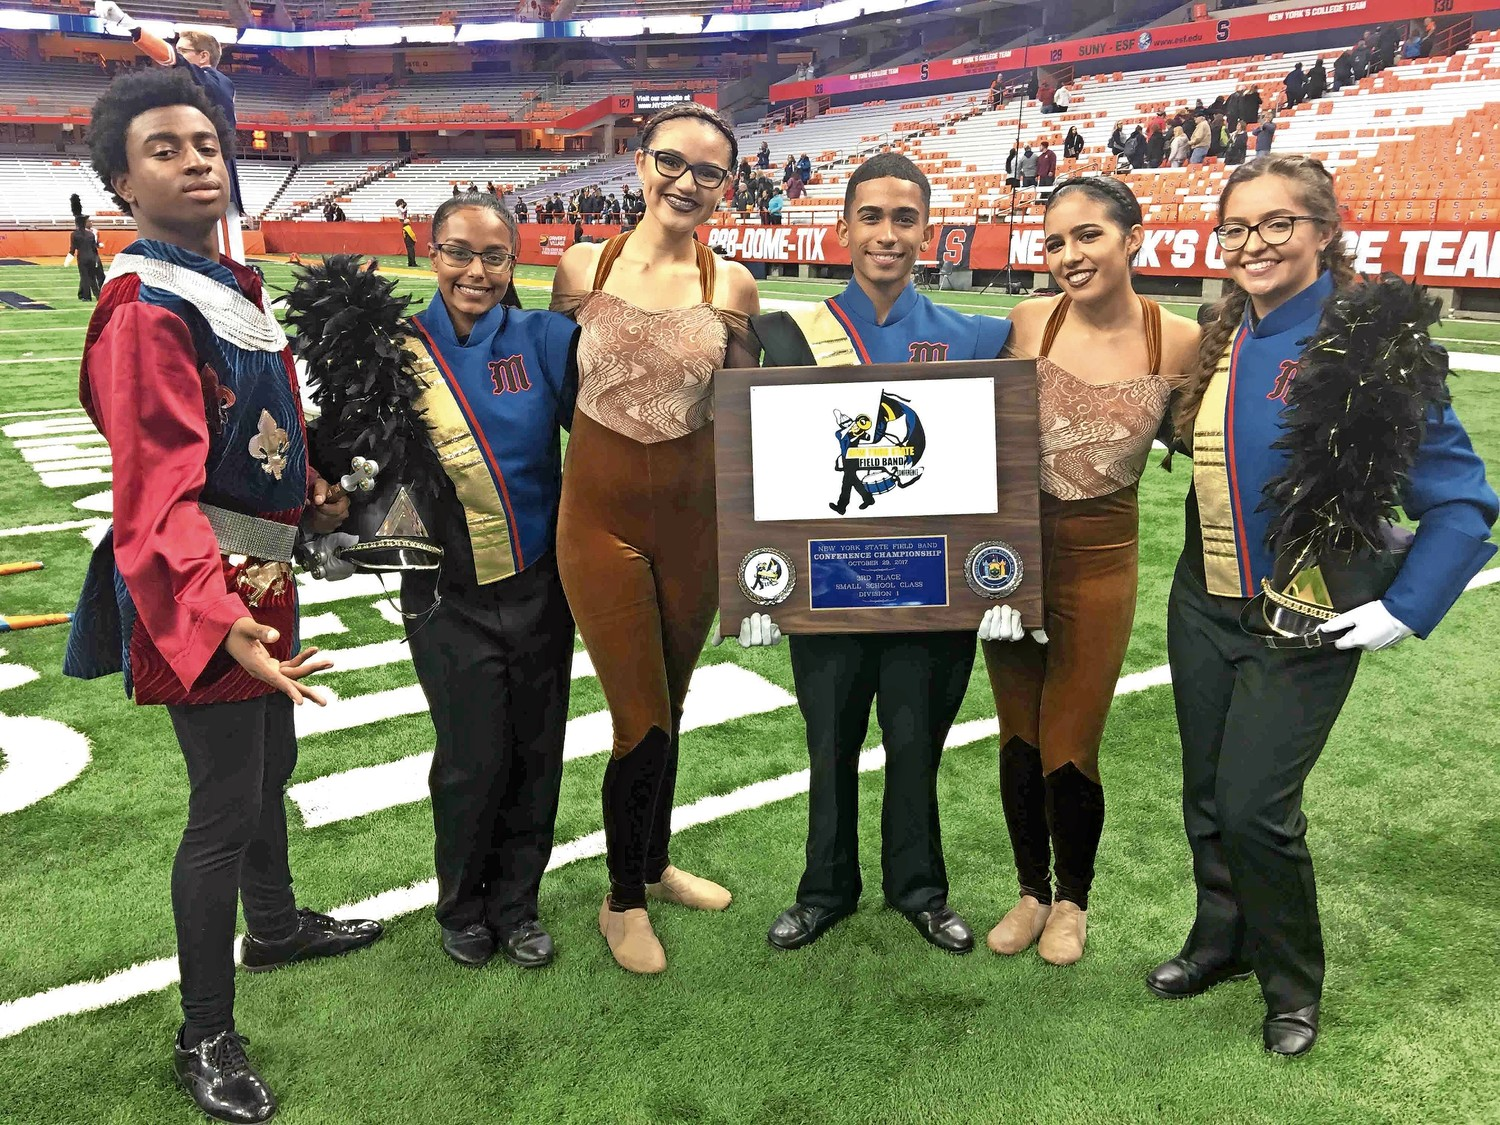 Members of Malverne High School's marching band, drama club, and flag twirling crew that included, from left, Brandon Joseph, Subhadra Debnath, Gabrielle Monogioudis, Alex Mendez, Angie Duran and Olivia Valentino were proud to finish third at the NYSFBC.